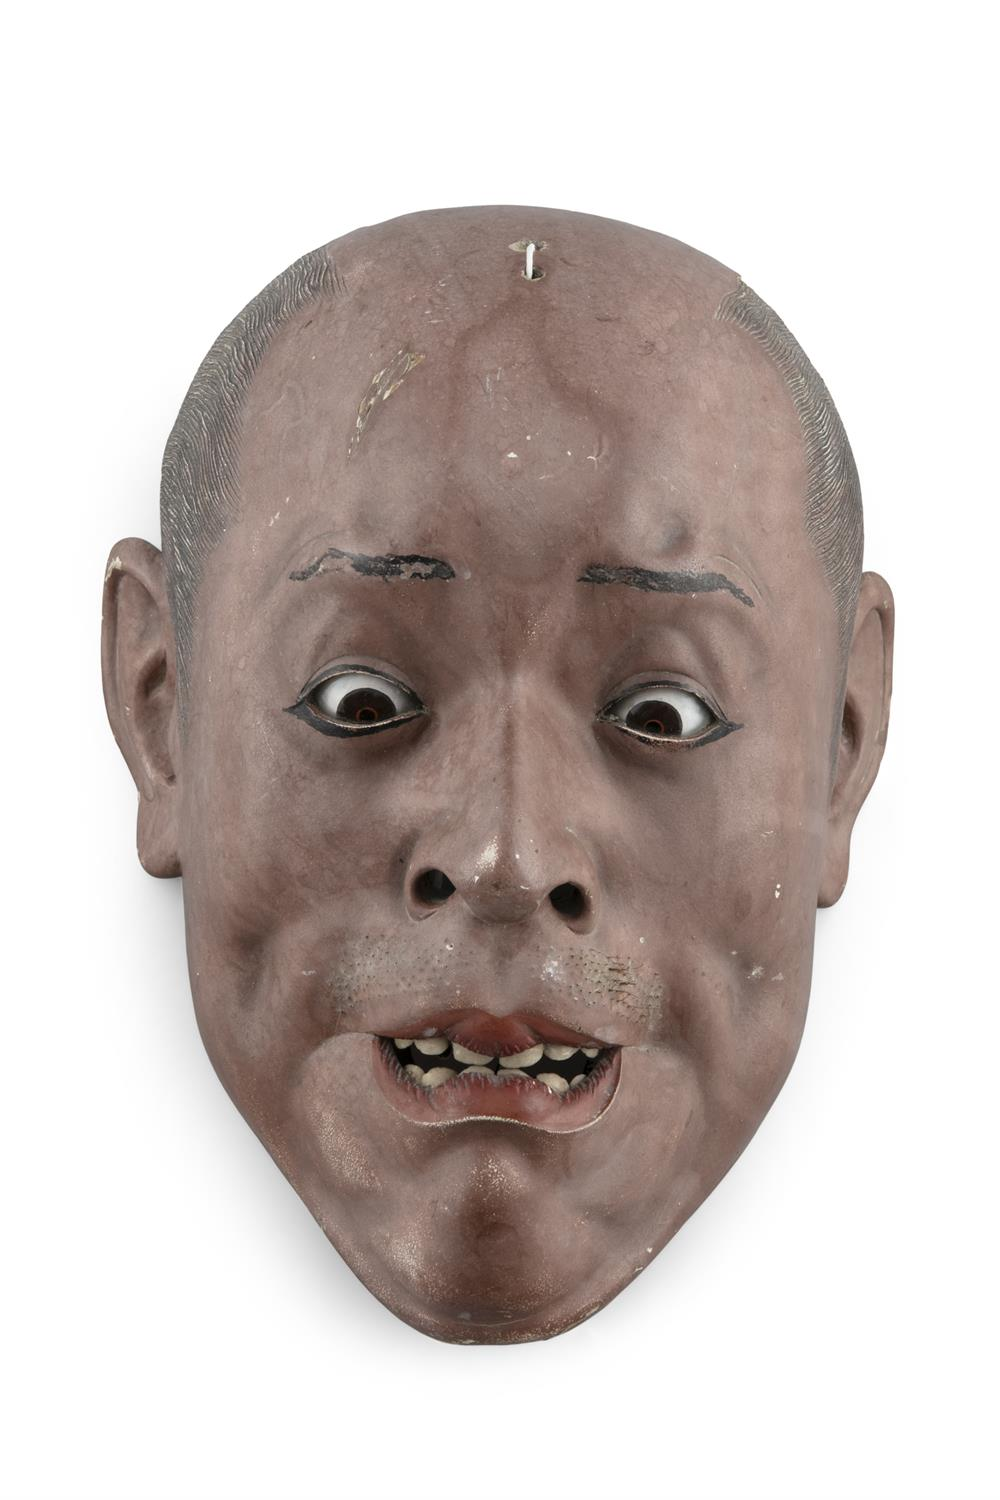 AN IKI NINGYO MASK OF A GRIMACING MAN Japan, 19th century Lacquered wooden mask with lively glass - Image 2 of 2